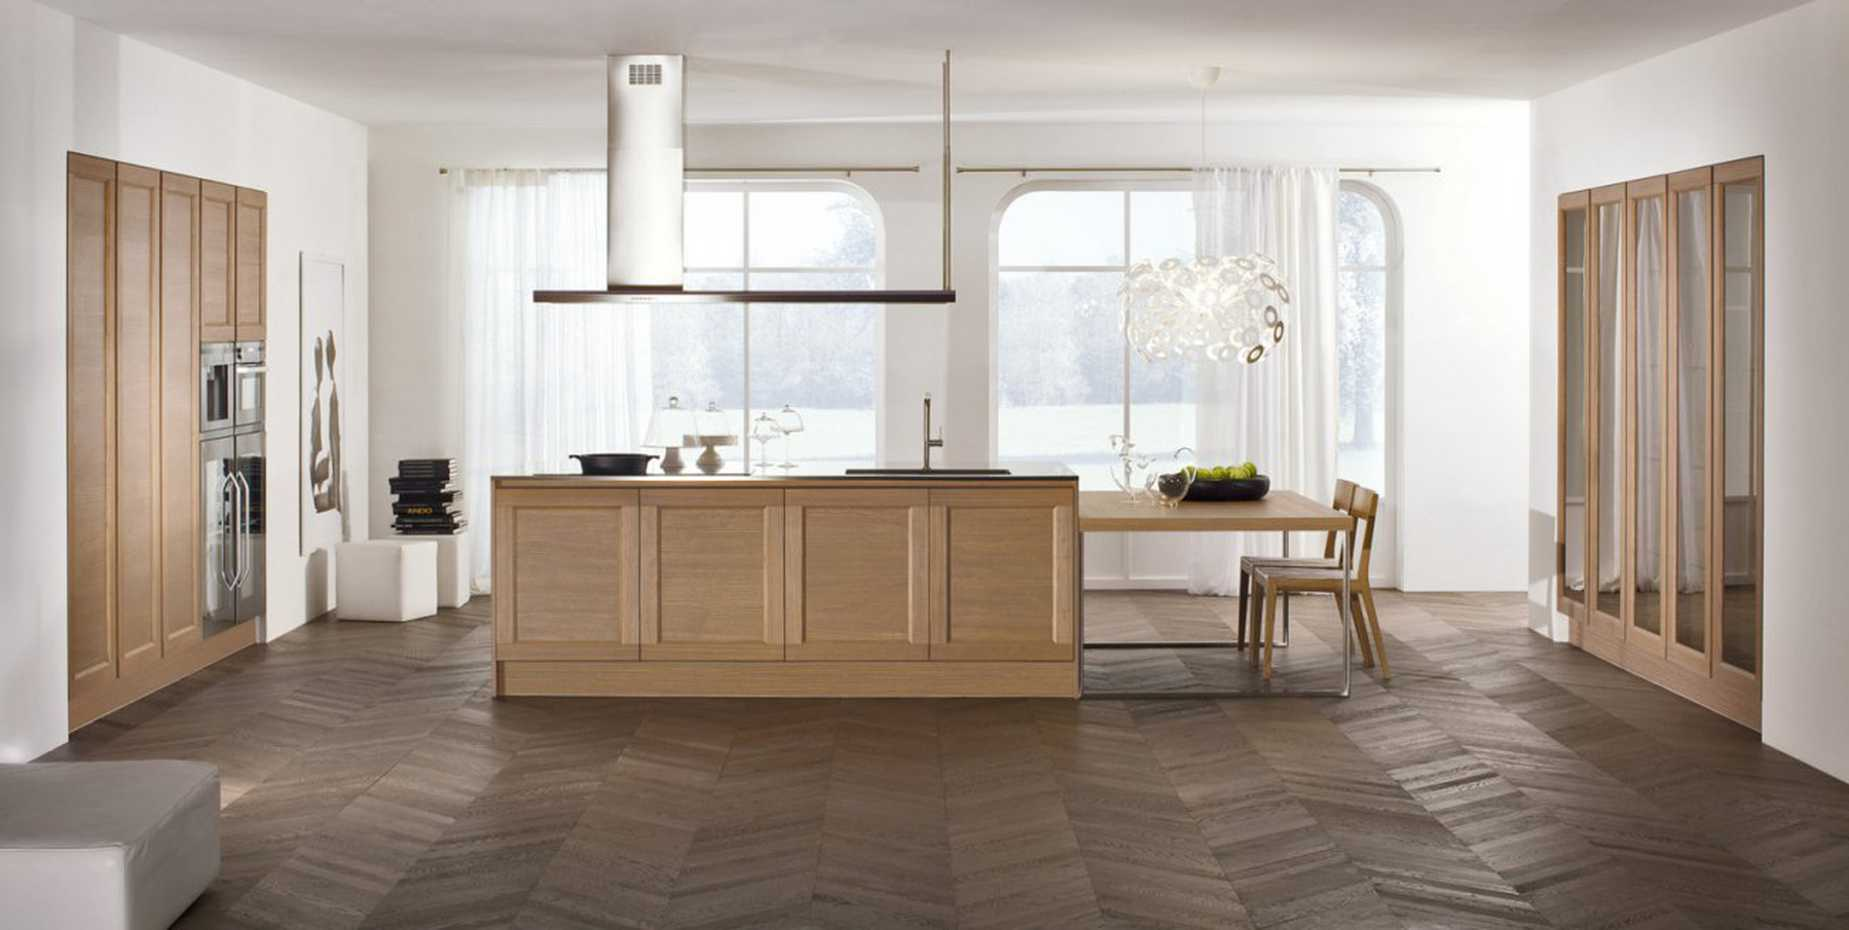 Glamour by Doimo Cucine product image 3